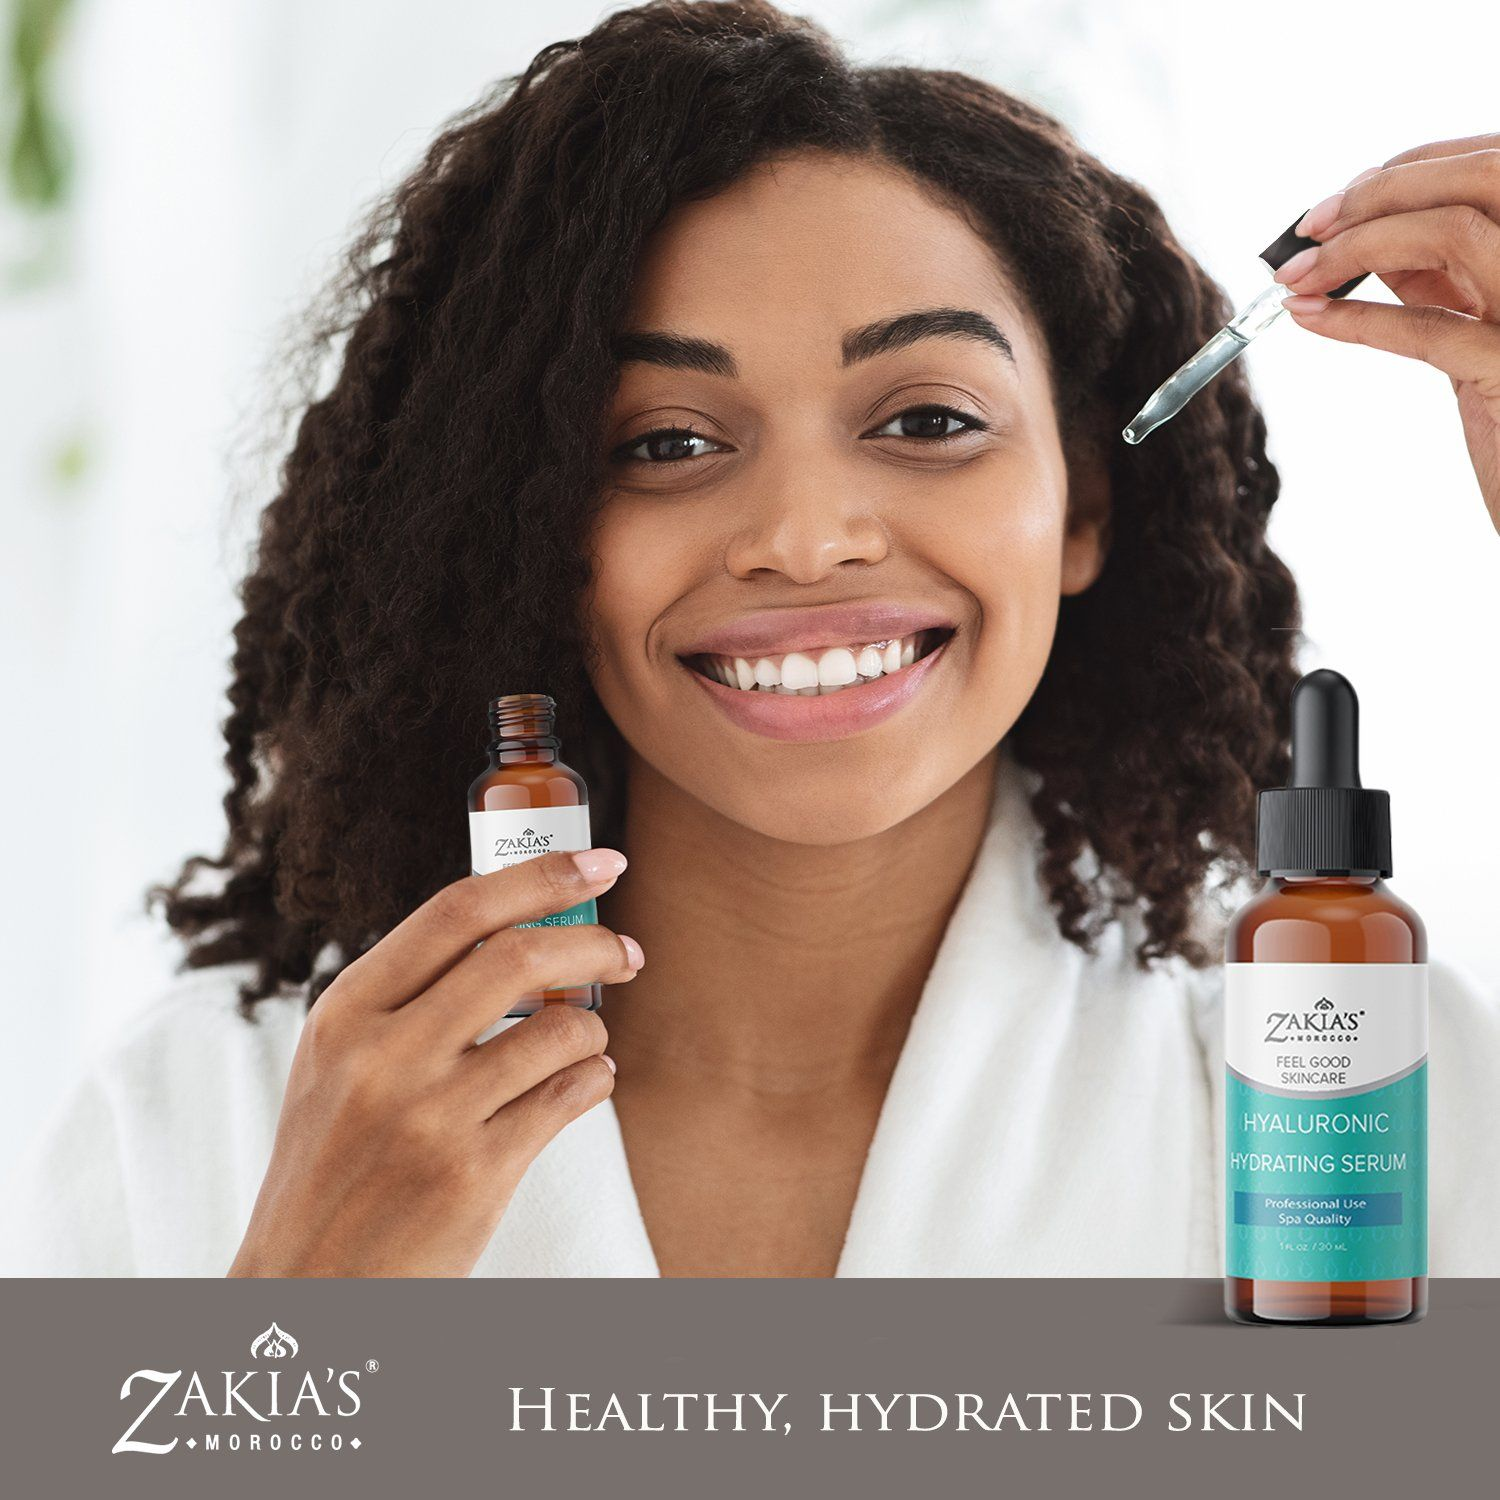 100% pure, natural product - Natural scent (no added fragrance) Help fight wrinkles, fine lines and discoloration Absorbs instantly to lock in skin's natural hydration Anti-aging Can hold up to 1000 times its weight in water!!! Beneficial for all skin types. No PEG, no mineral oil, no silicon, no Parabens! Our natural Hyaluronic Acid Serum will rejuvenate and restore your skin's youthful glow. A super moisturizer, capable of holding up to 1000 times its own weight in water. Our serum's hydrating